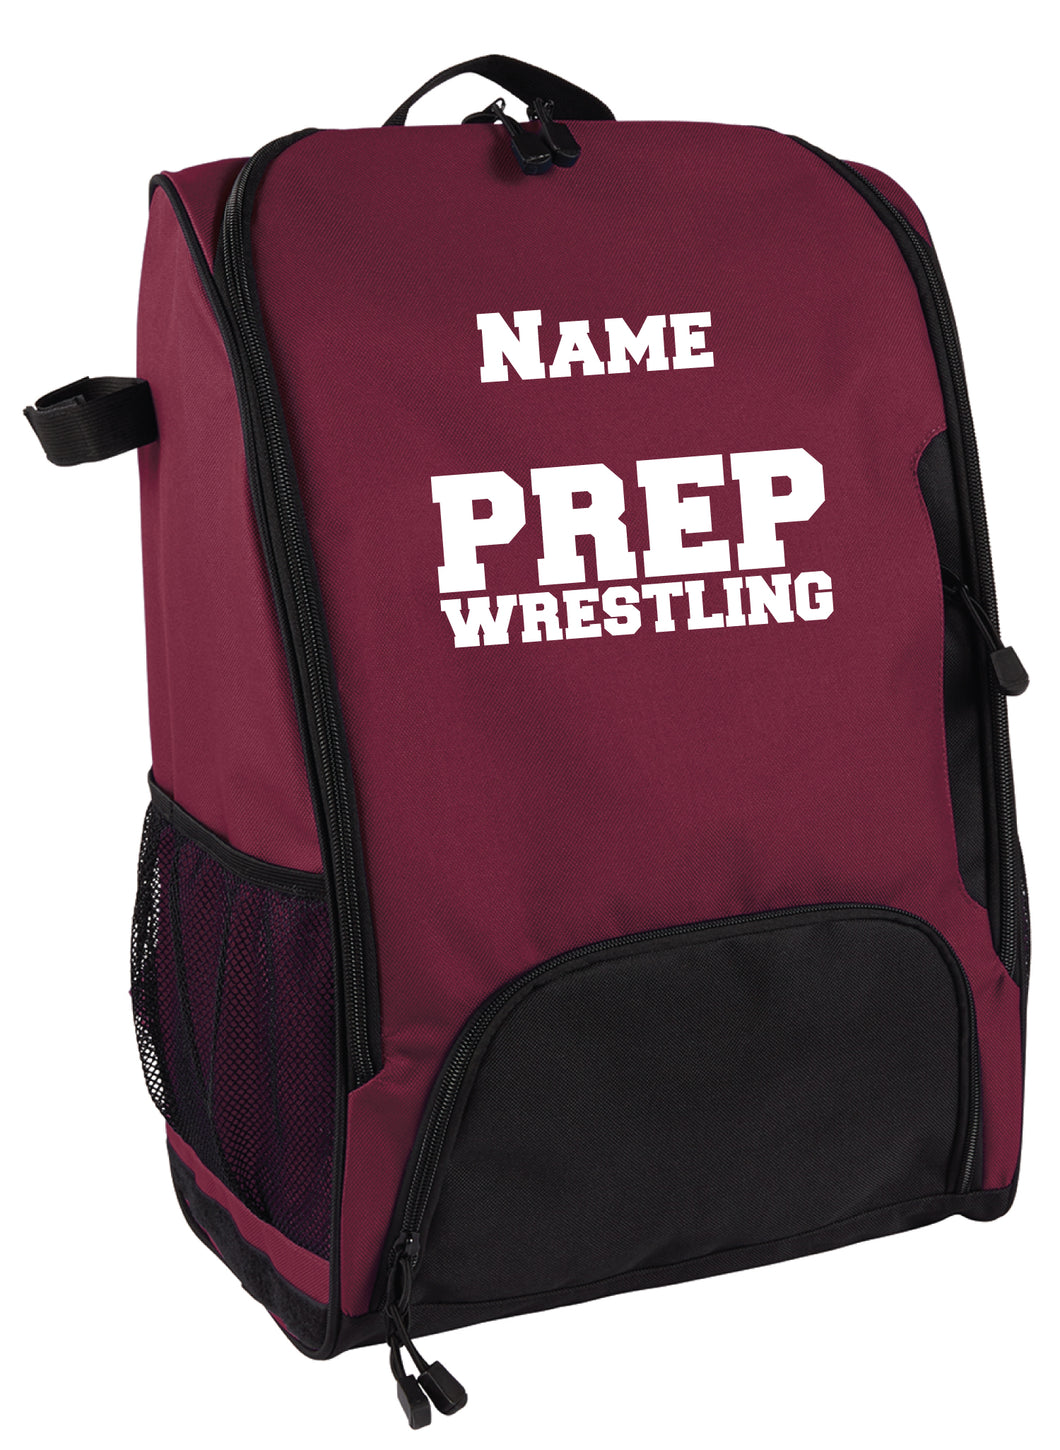 St. Peter's Prep Wrestling Backpack - 5KounT2018